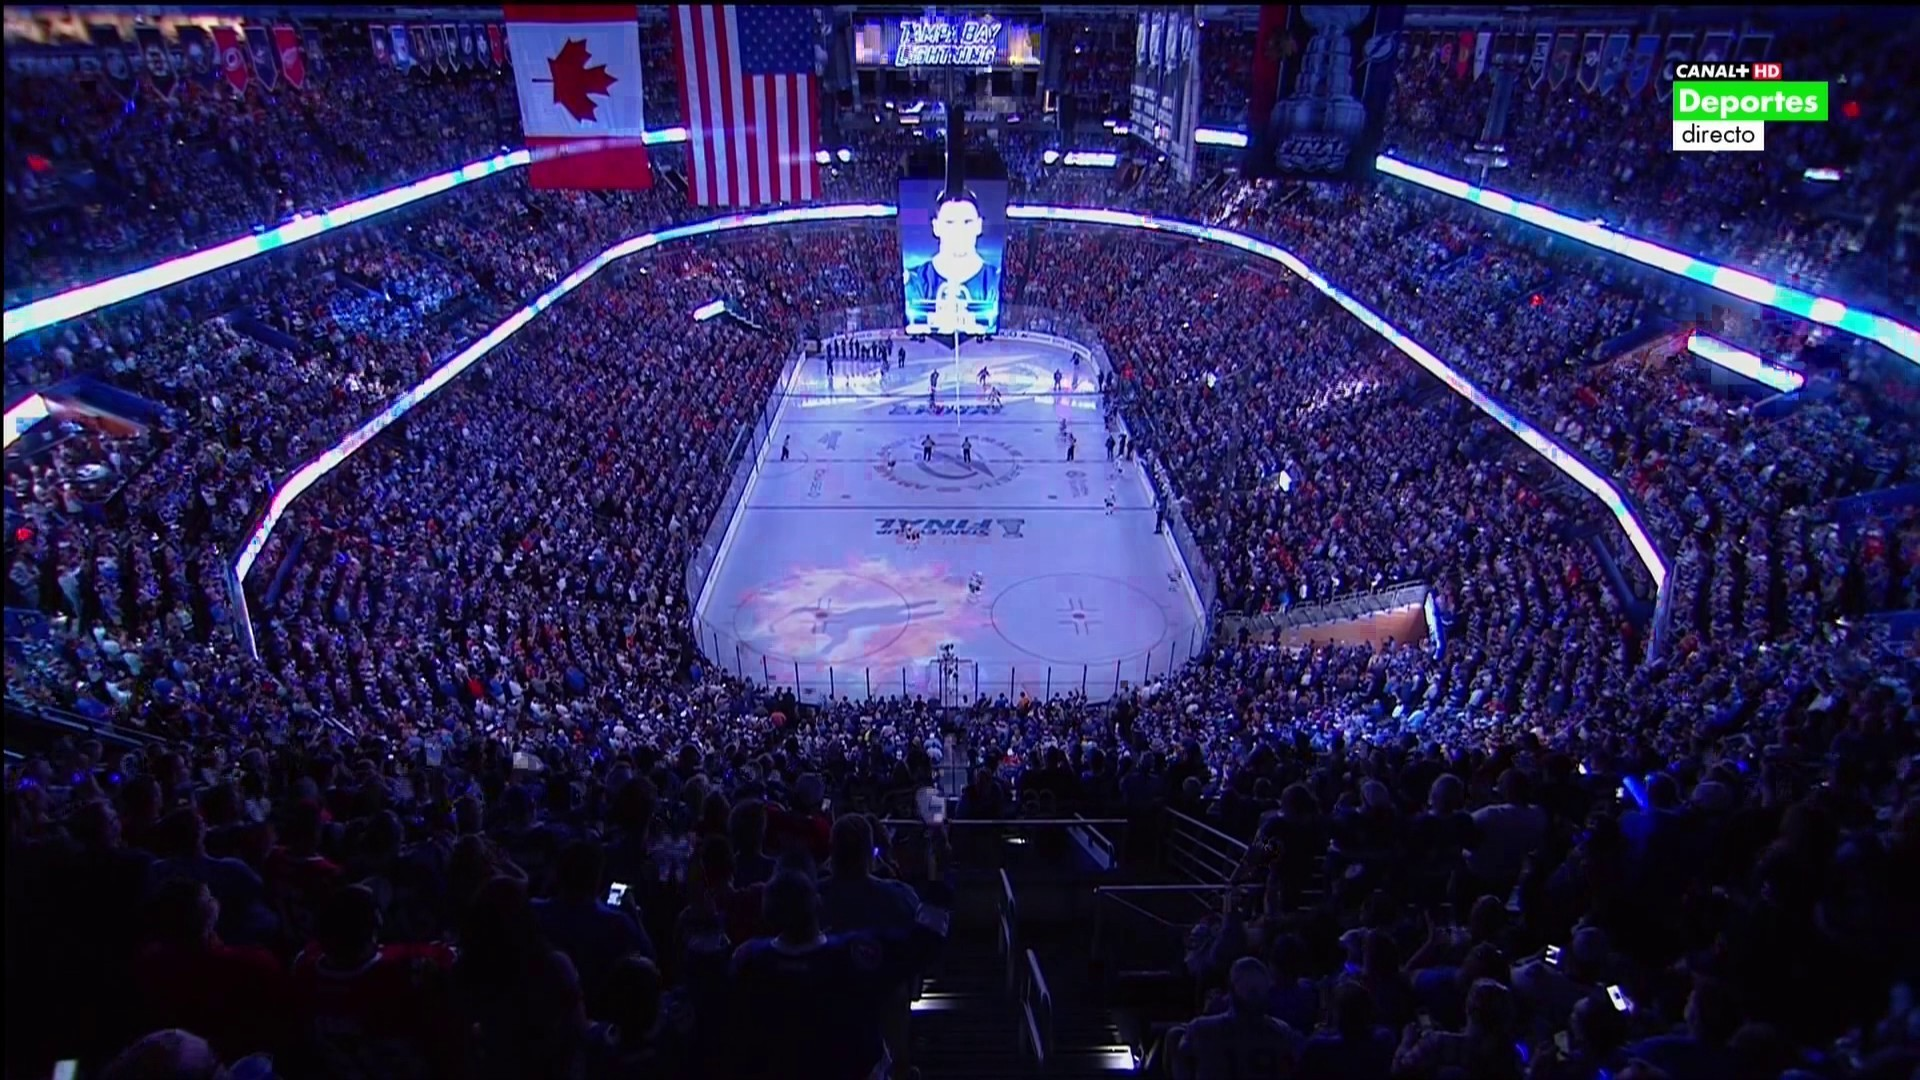 Tampa bay lightning wallpapers 62 background pictures - Tampa bay lightning wallpaper 1920x1080 ...